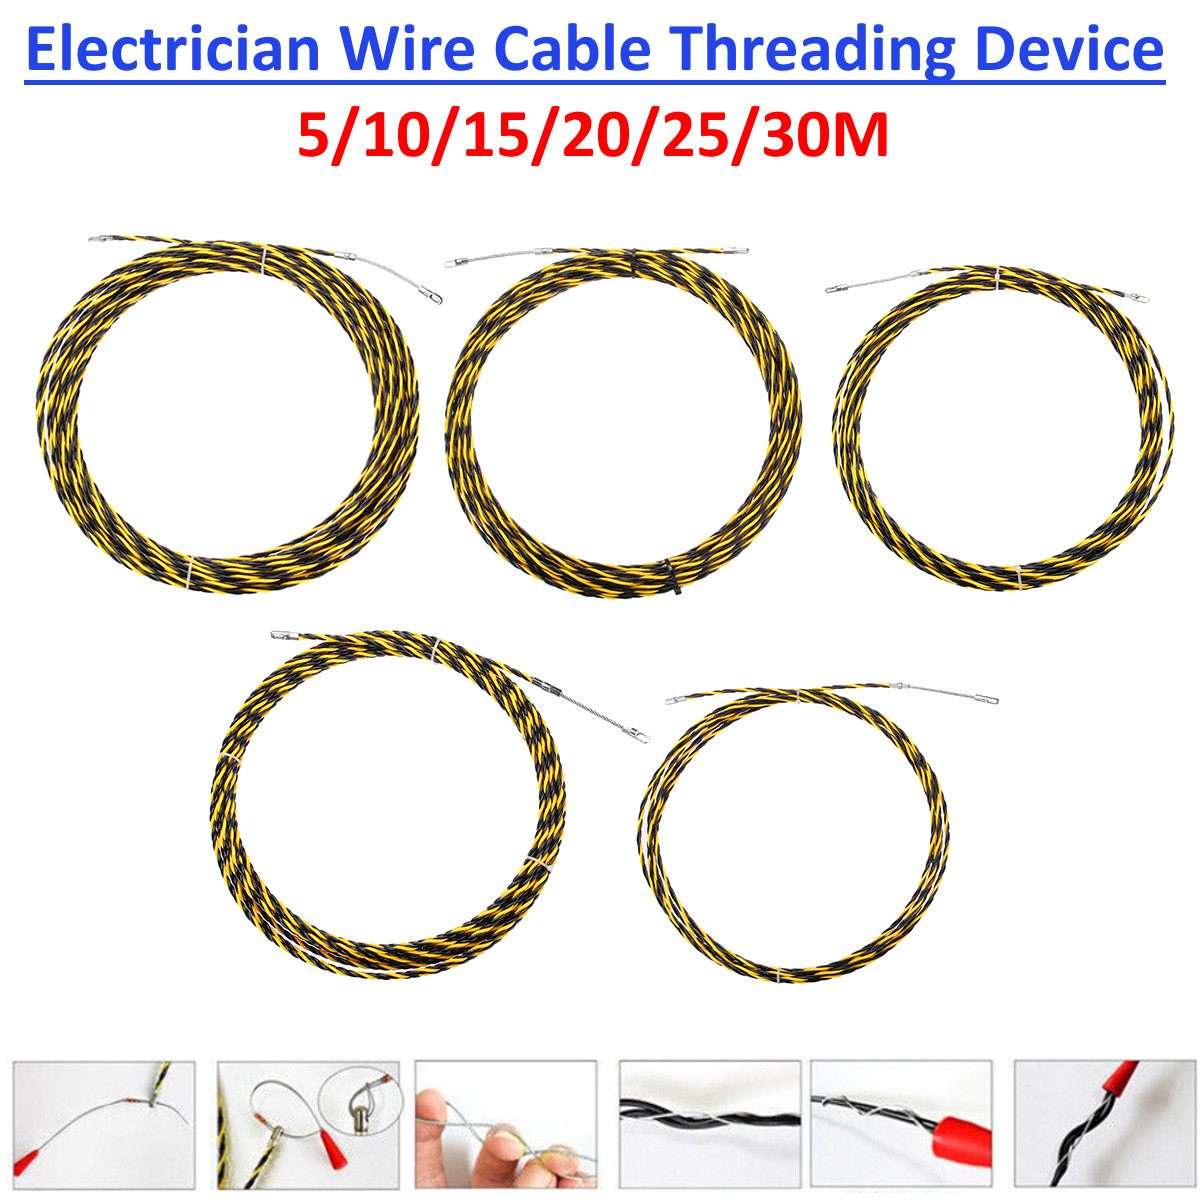 5/10/15/20/25/30m*6mm Electrician Wire Cable Threading Device Wire Cable Running Puller Electrical Wires Threader Rodder Pulling